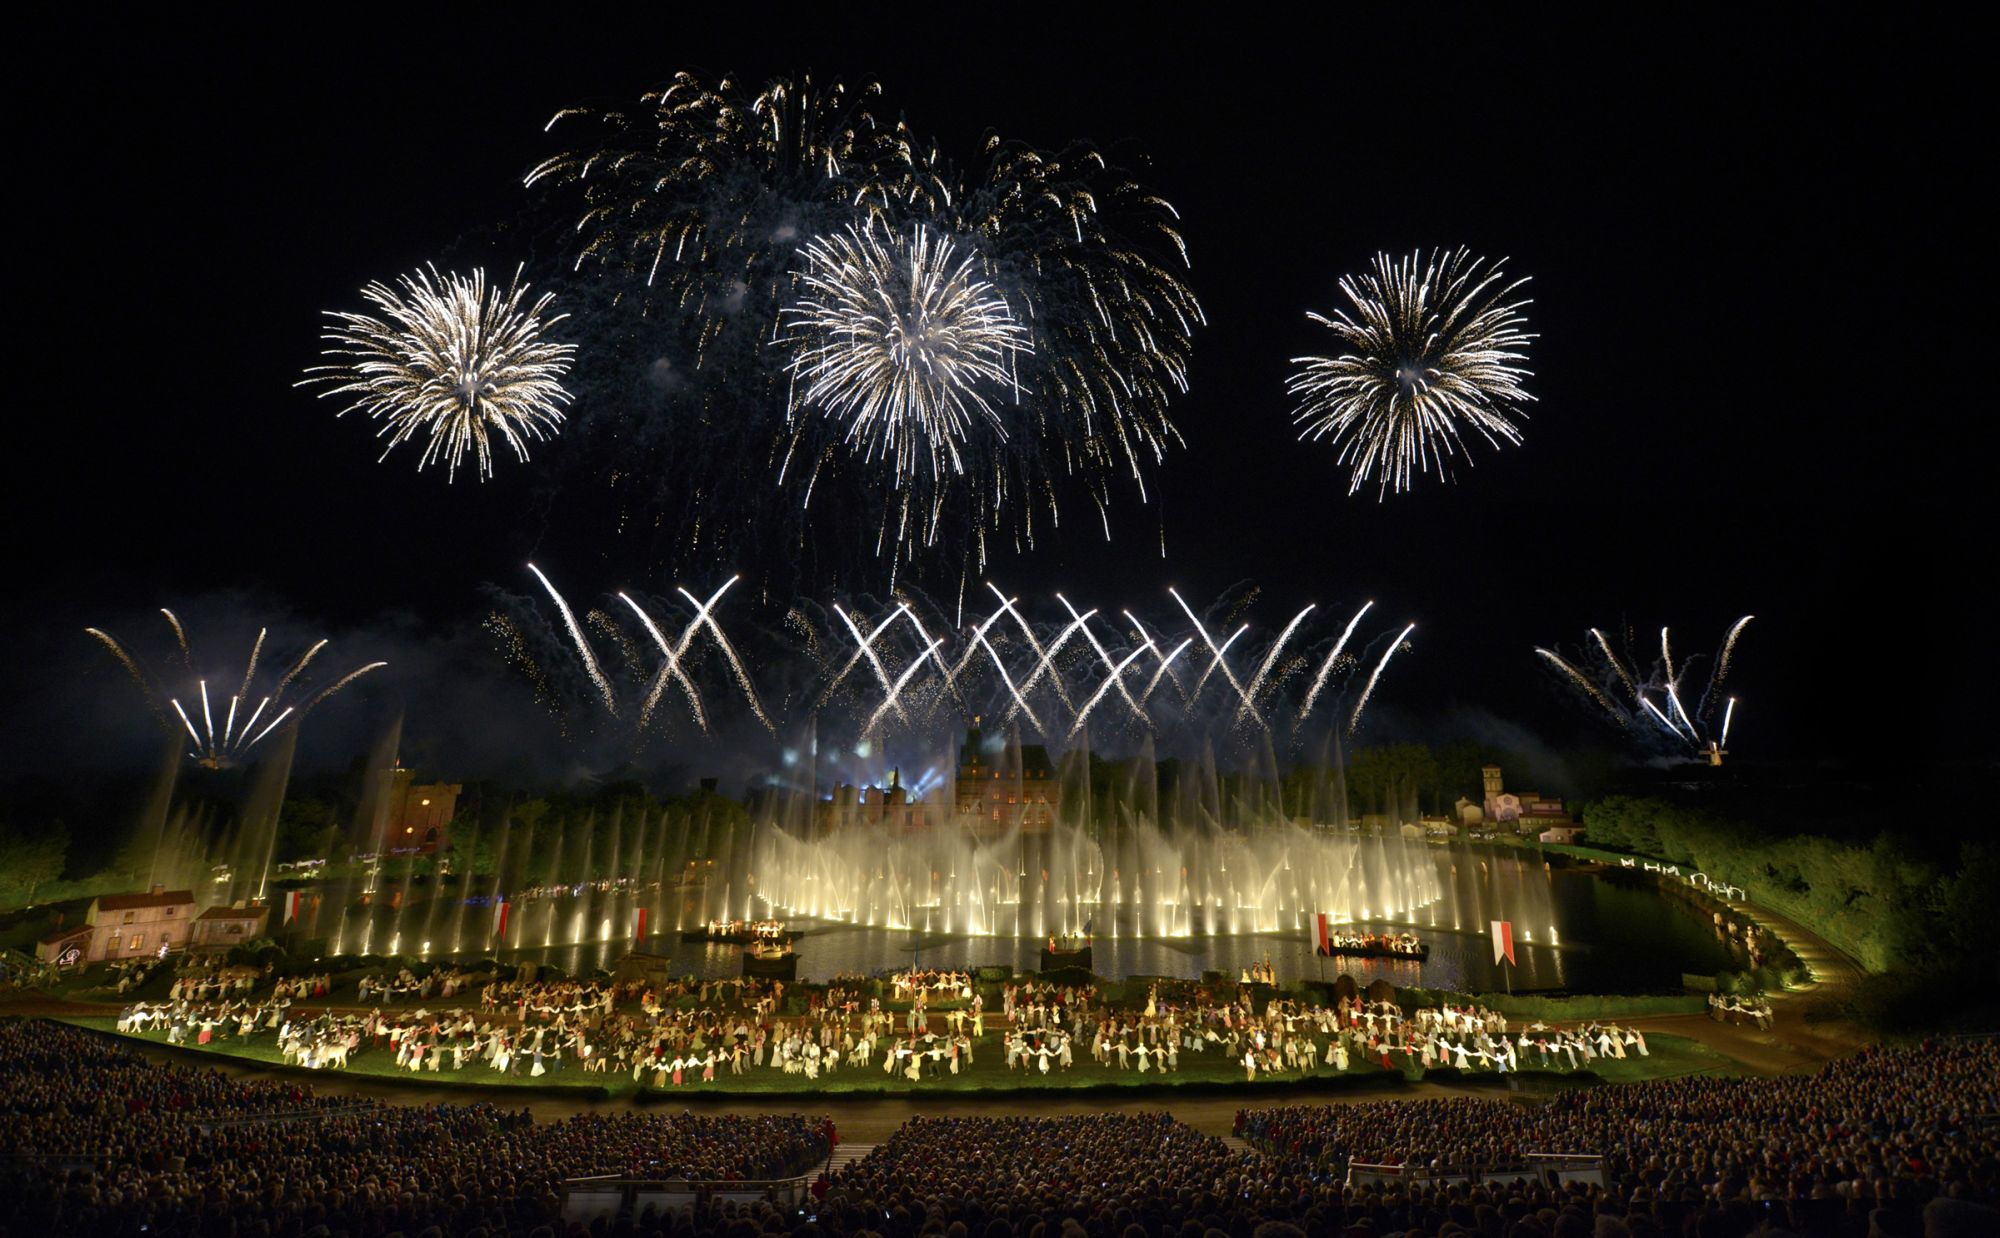 A display of fireworks at the Cinéscénie show.